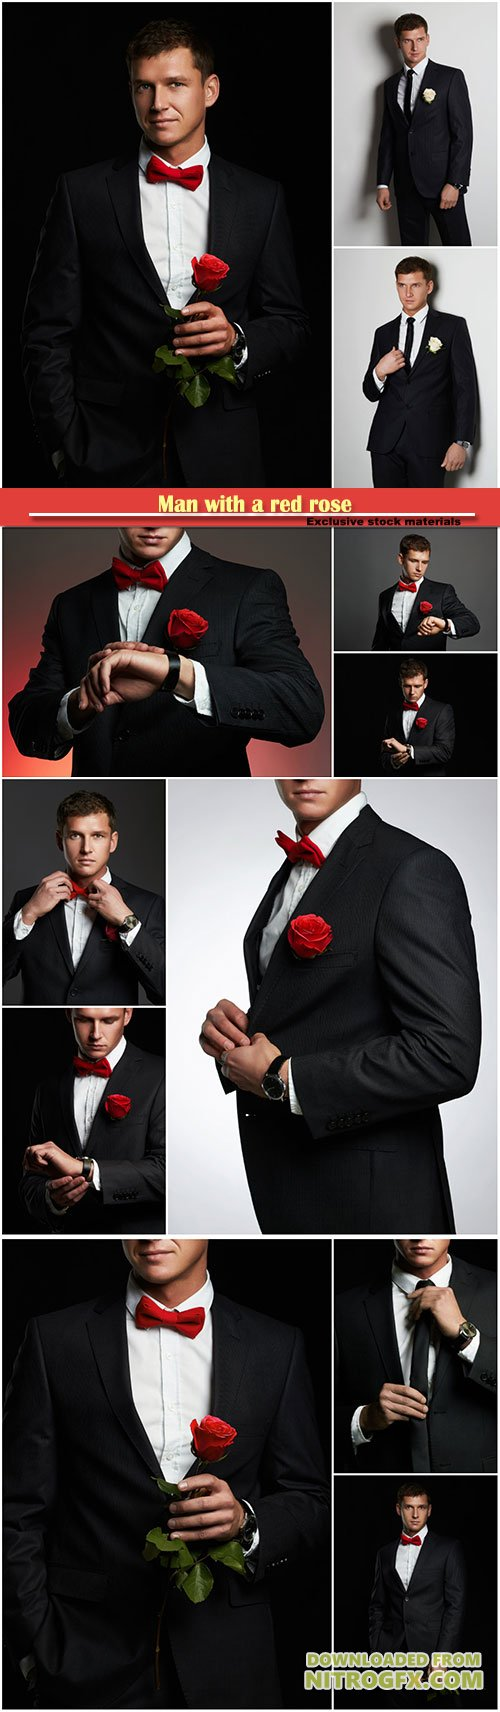 Man with a red rose, a bridegroom in a black suit